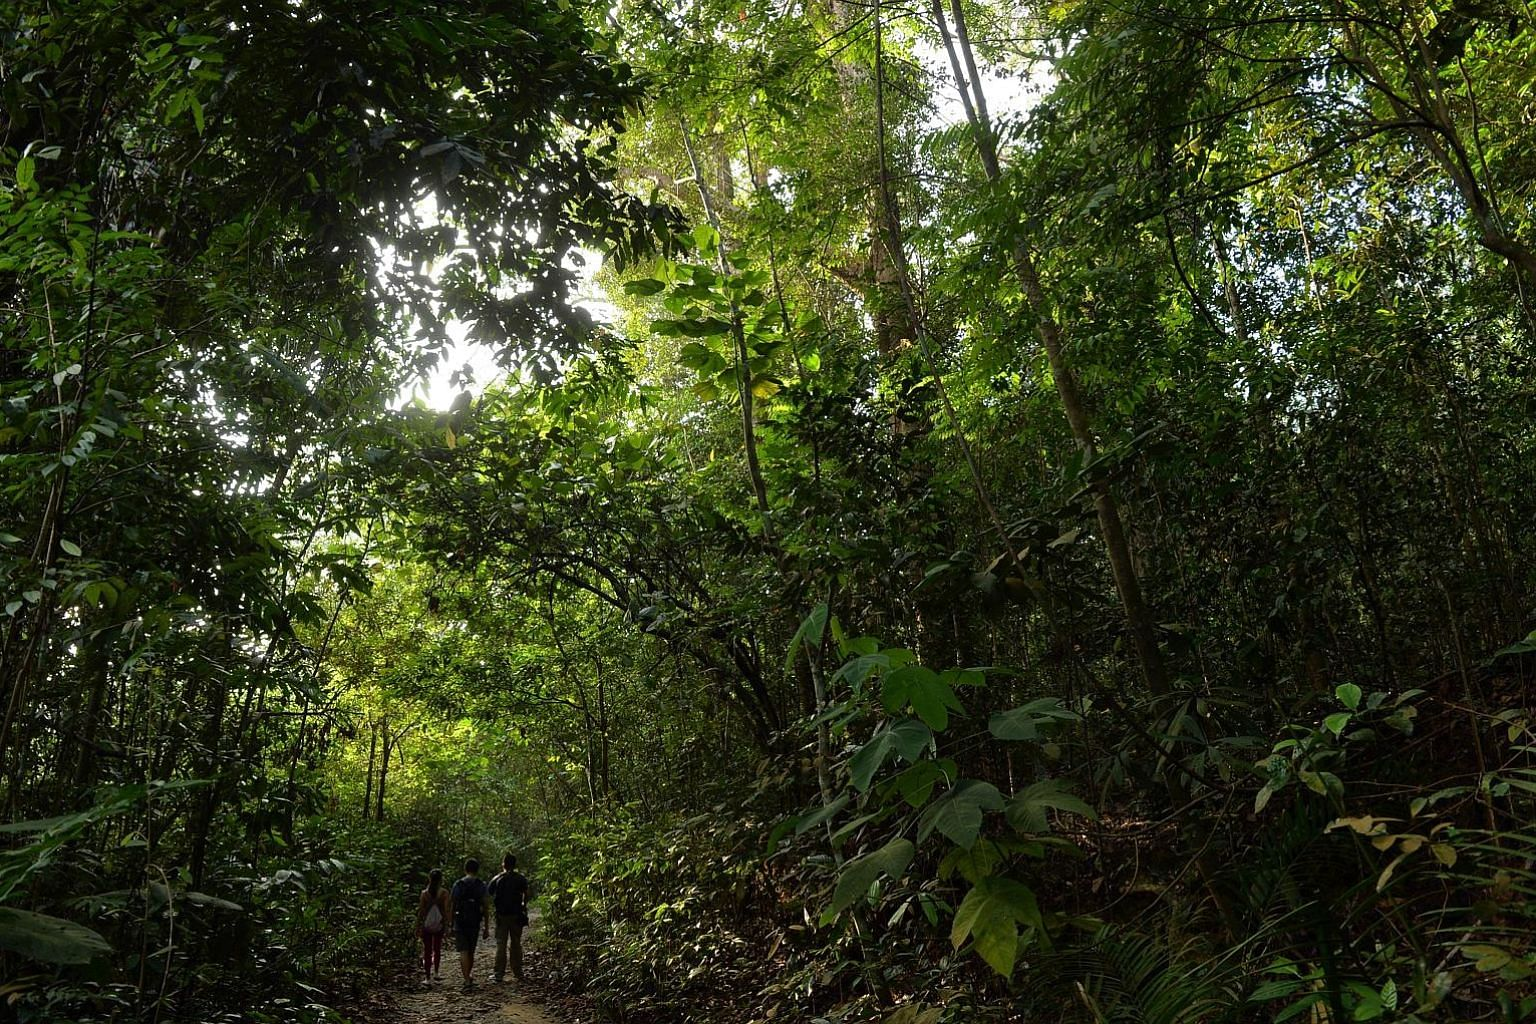 People hiking in Rifle Range Link in the Central Catchment Nature Reserve, under which the Cross Island MRT Line connecting Changi and Jurong will run at a depth of 70m.